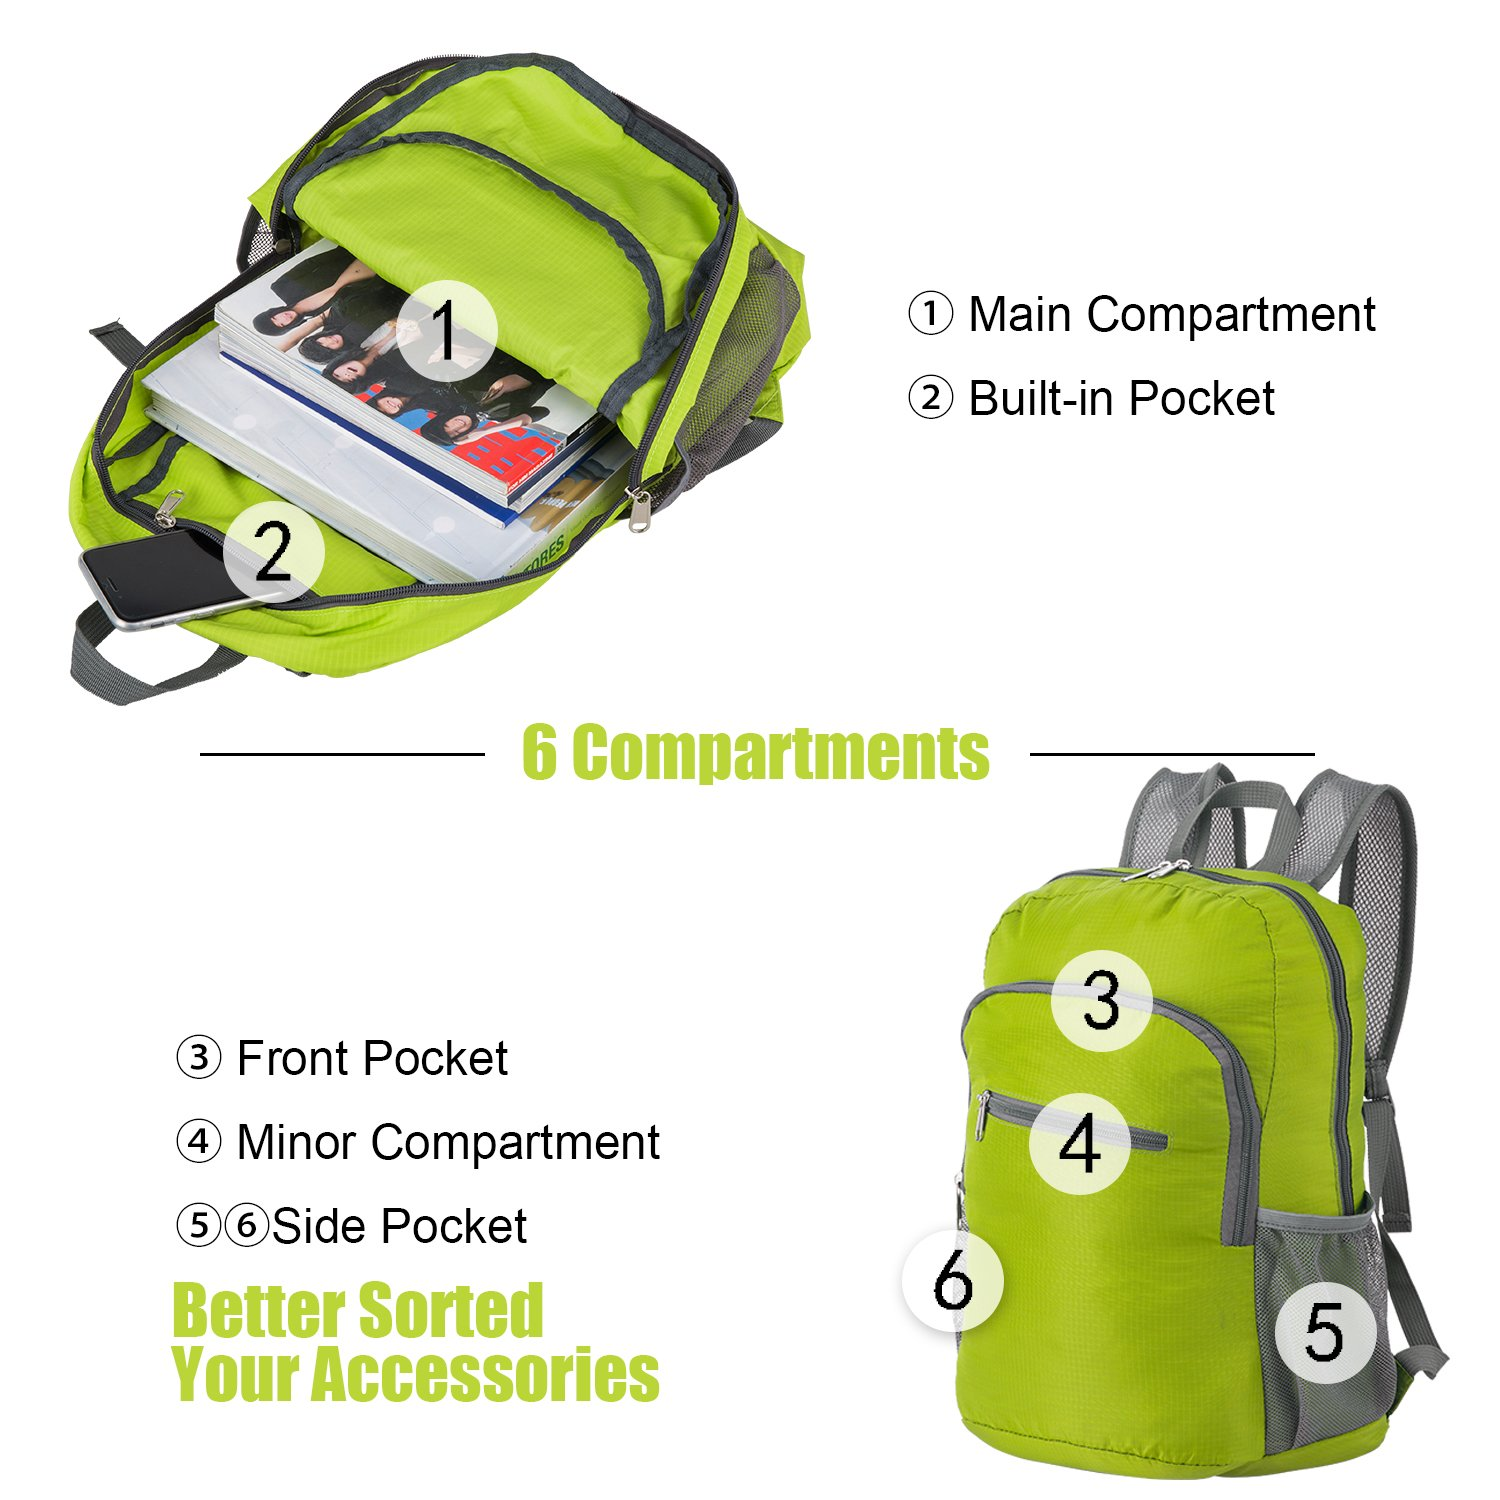 d377a0ebc5 Lightweight Backpack Small Foldable Daypack Packable Travel Bag 20L  Ultralight Water Resistant Durable for Hiking Camping